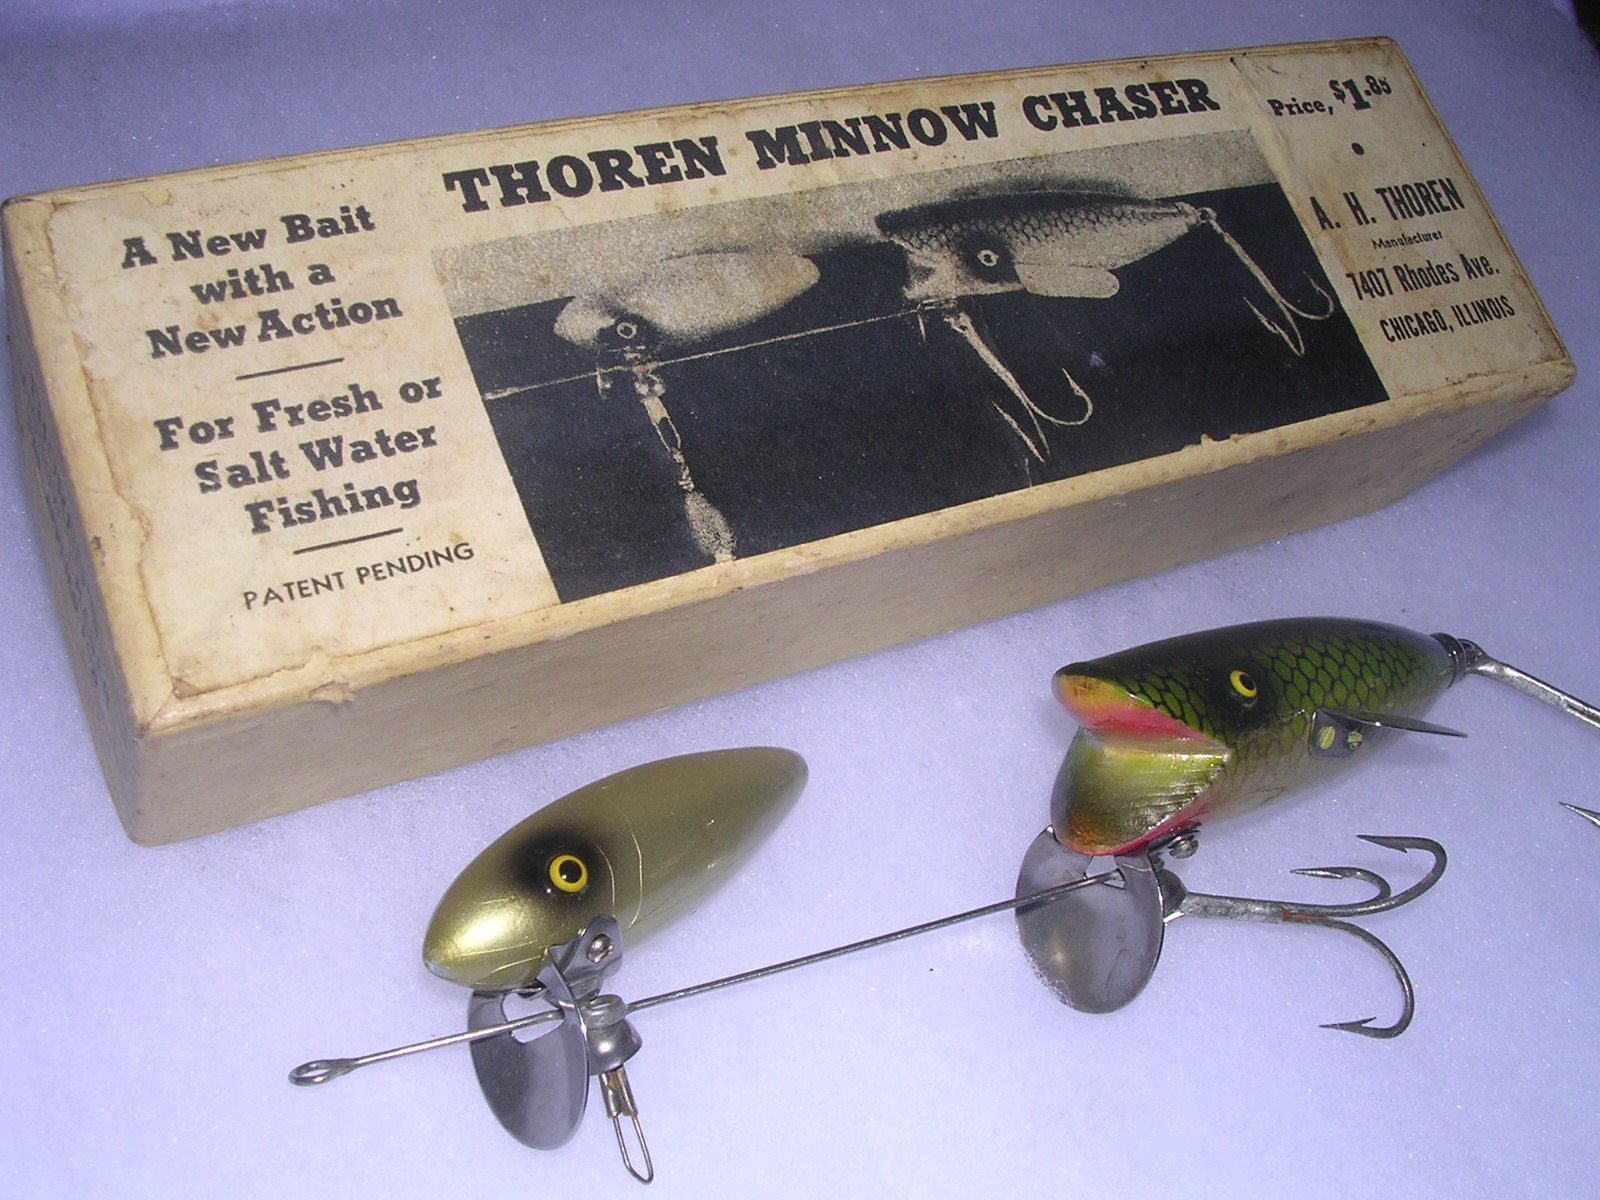 30 Antique Fishing Lures and Why They're Collectible | Field